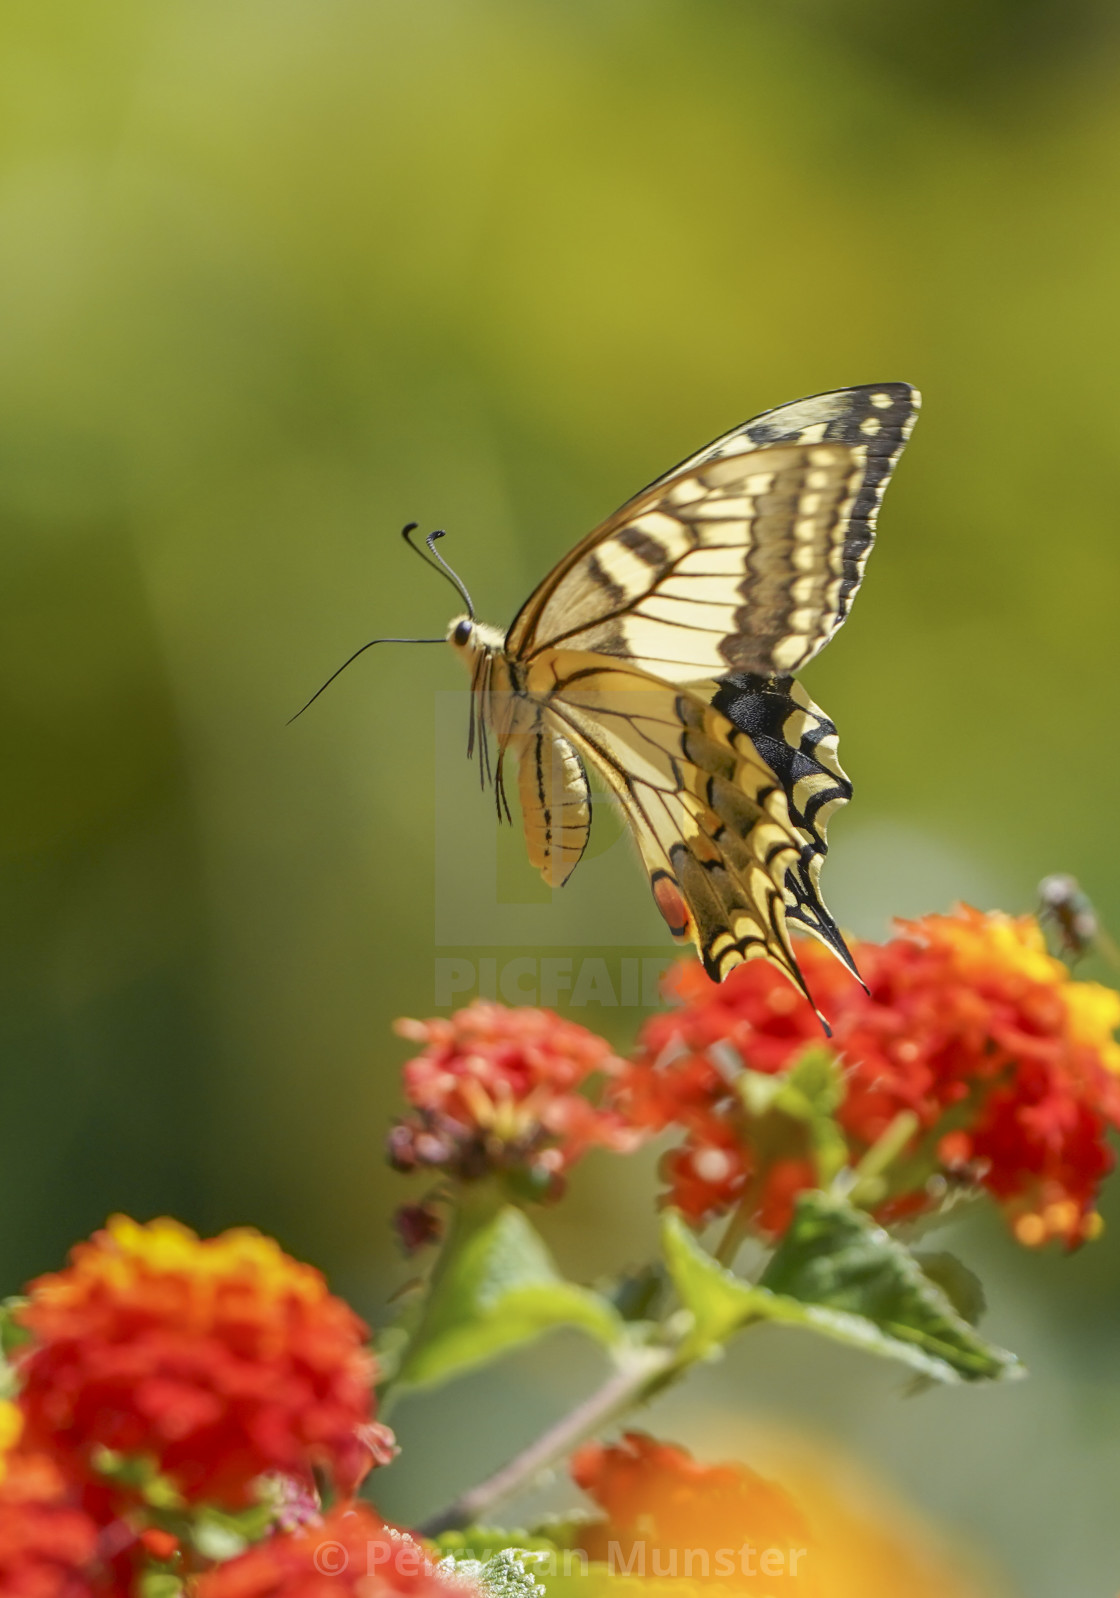 """Common yellow swallowtail, Papilio machaon, in flight"" stock image"